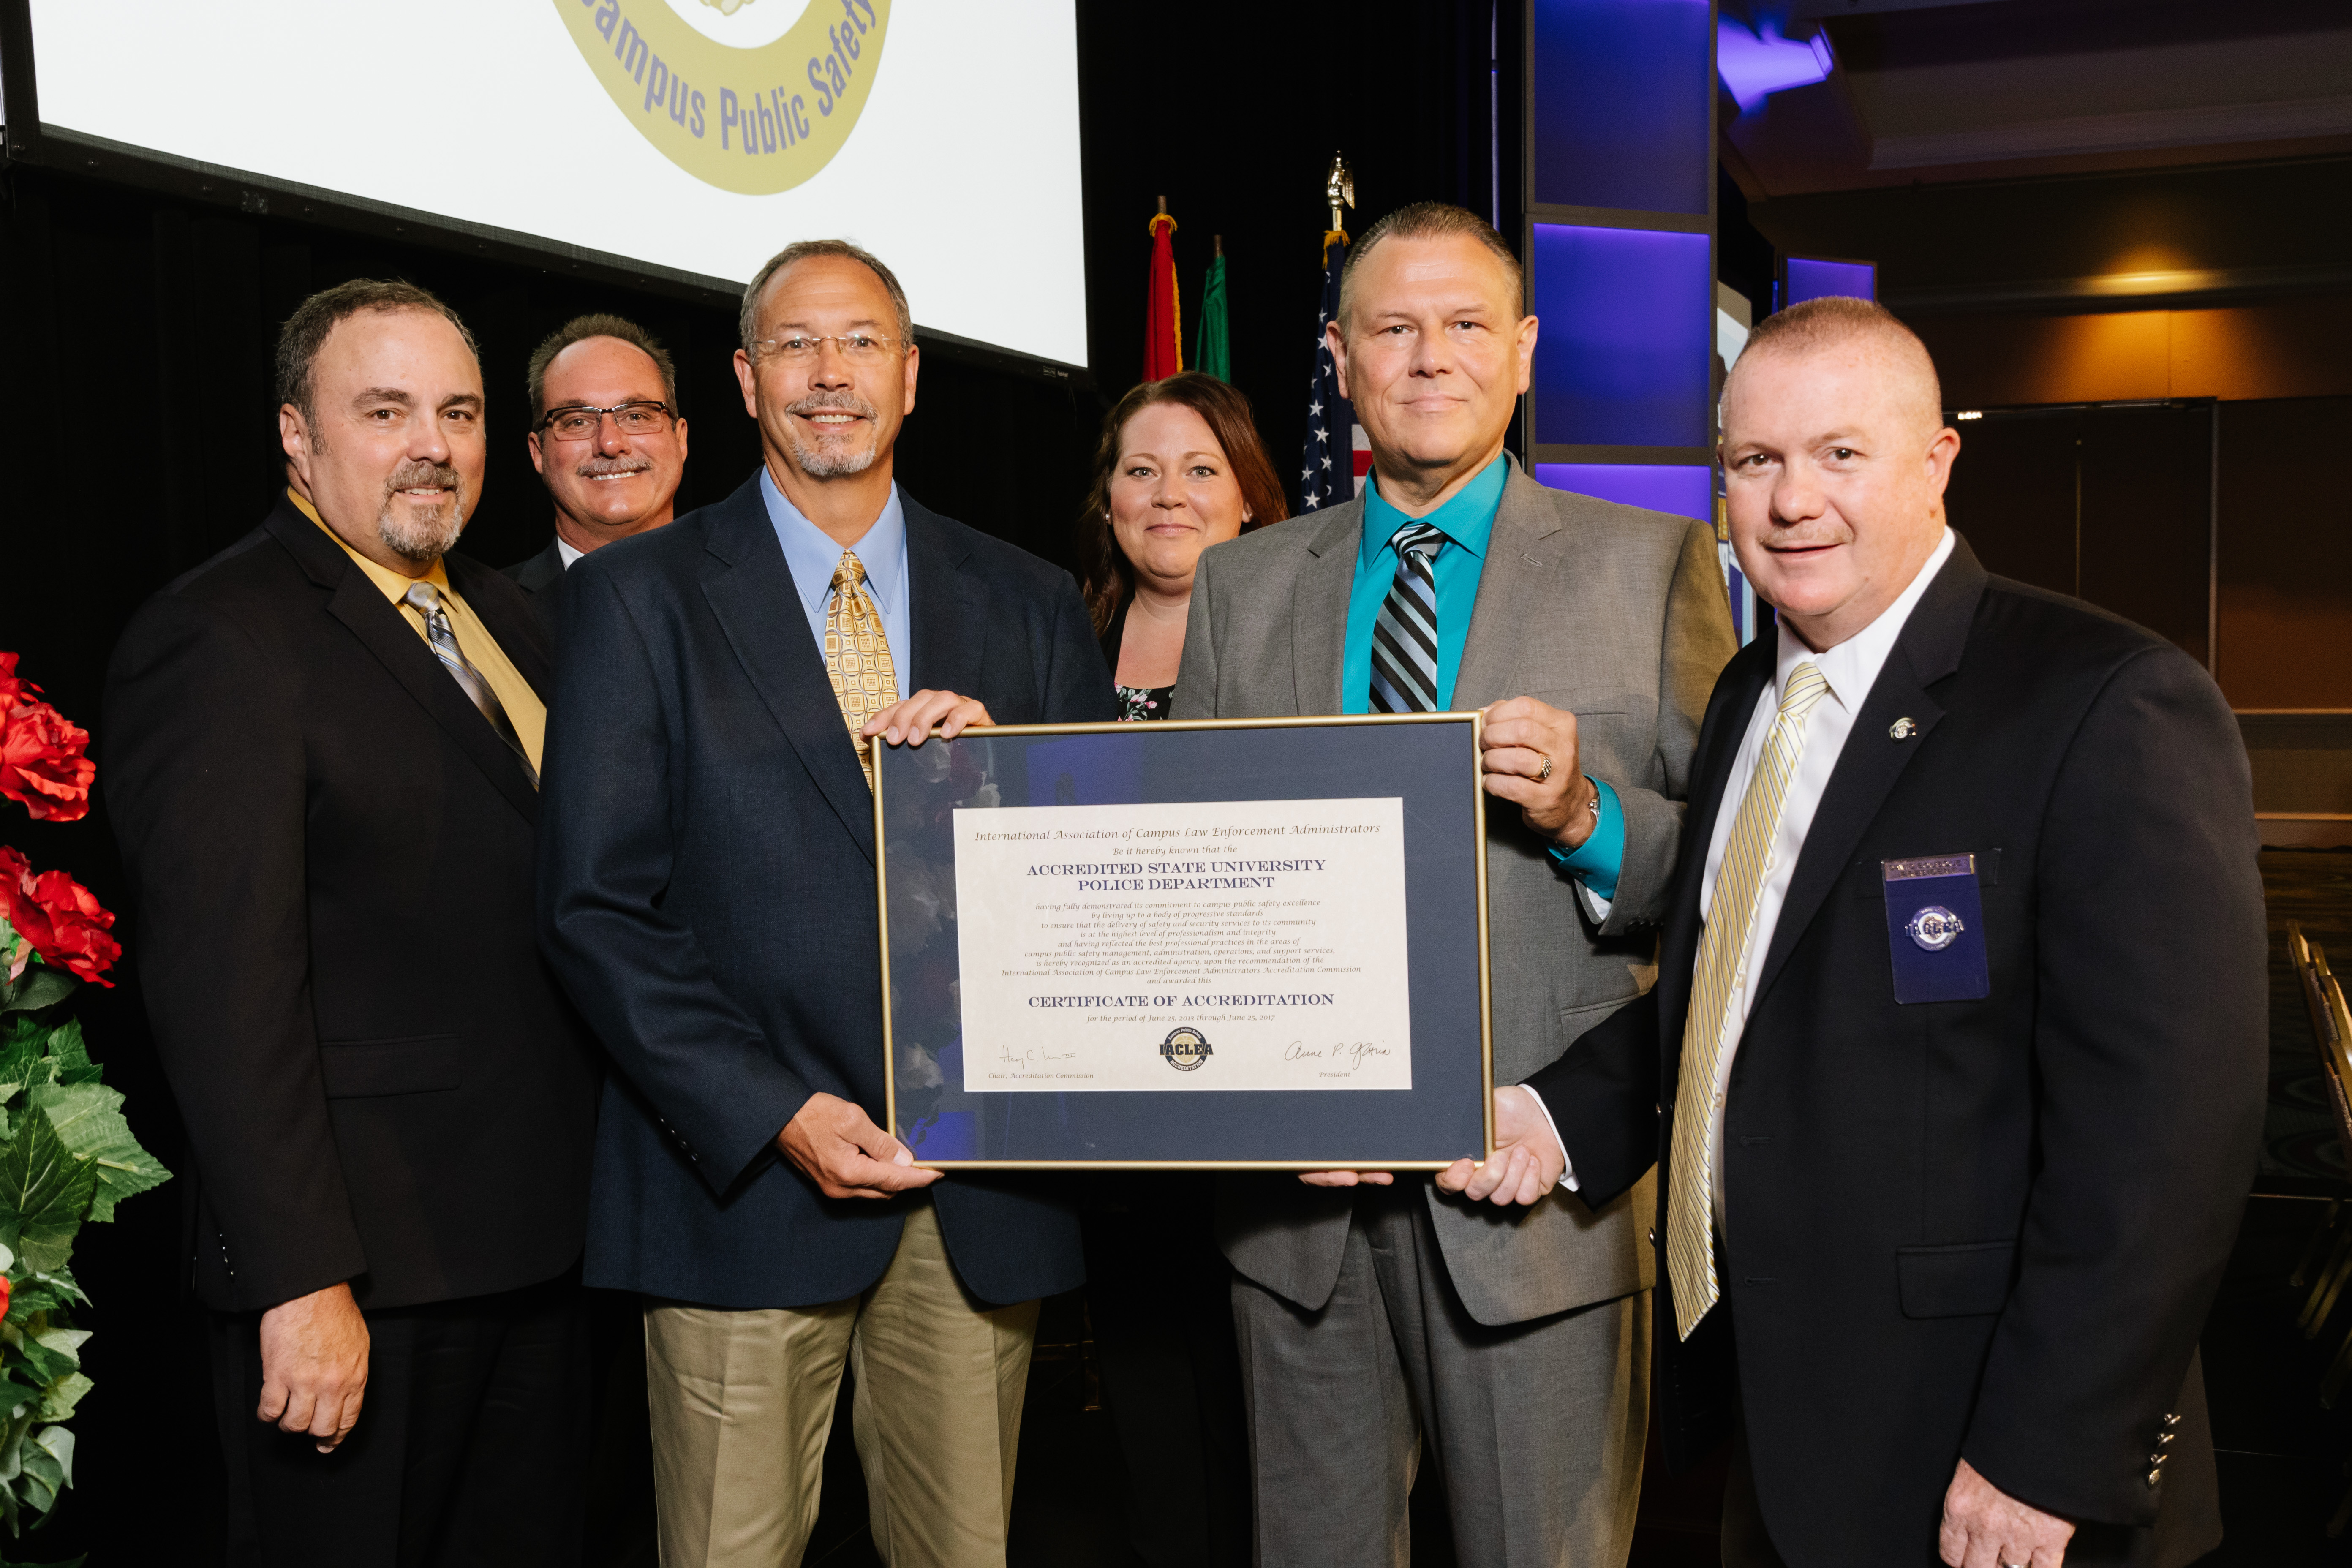 Representatives of the College of Lake County (Illinois) Police Department accepted their IACLEA Accreditation Award at the 2018 Annual Conference & Exposition. © Mike Ritter